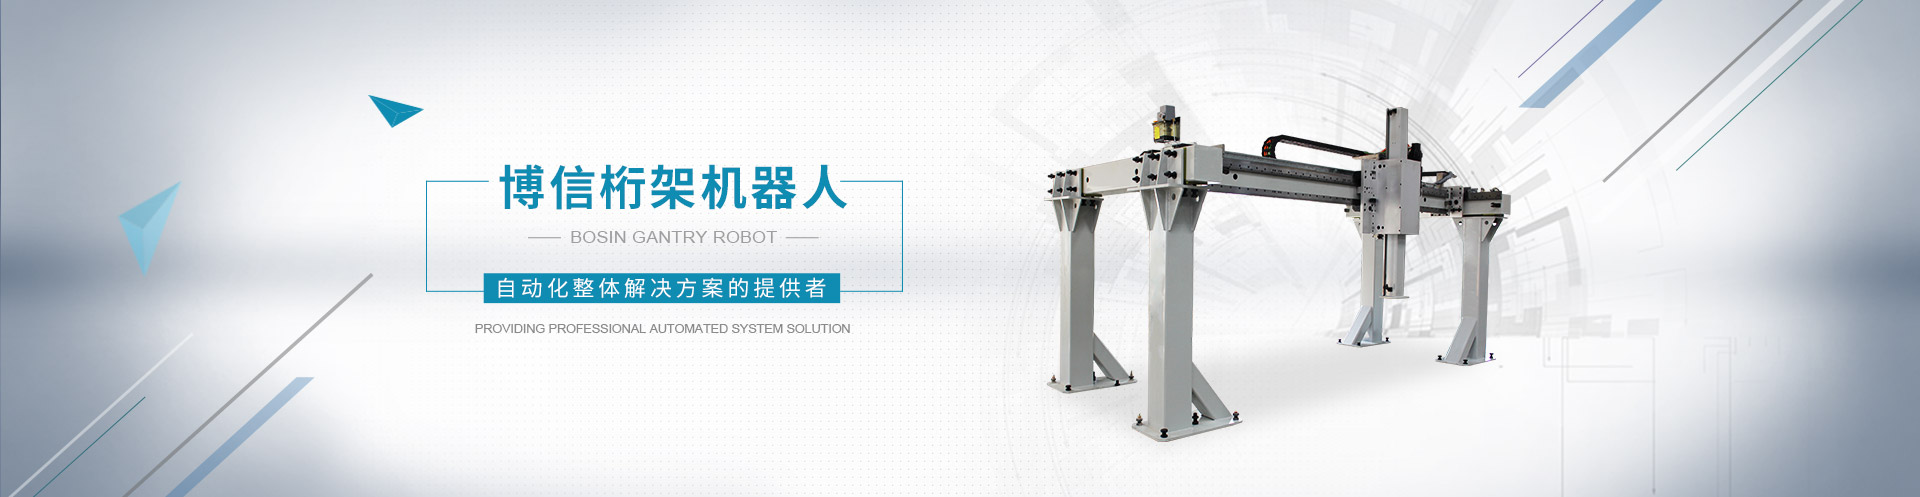 Shanghai Bosin Robot Technology Co., Ltd.